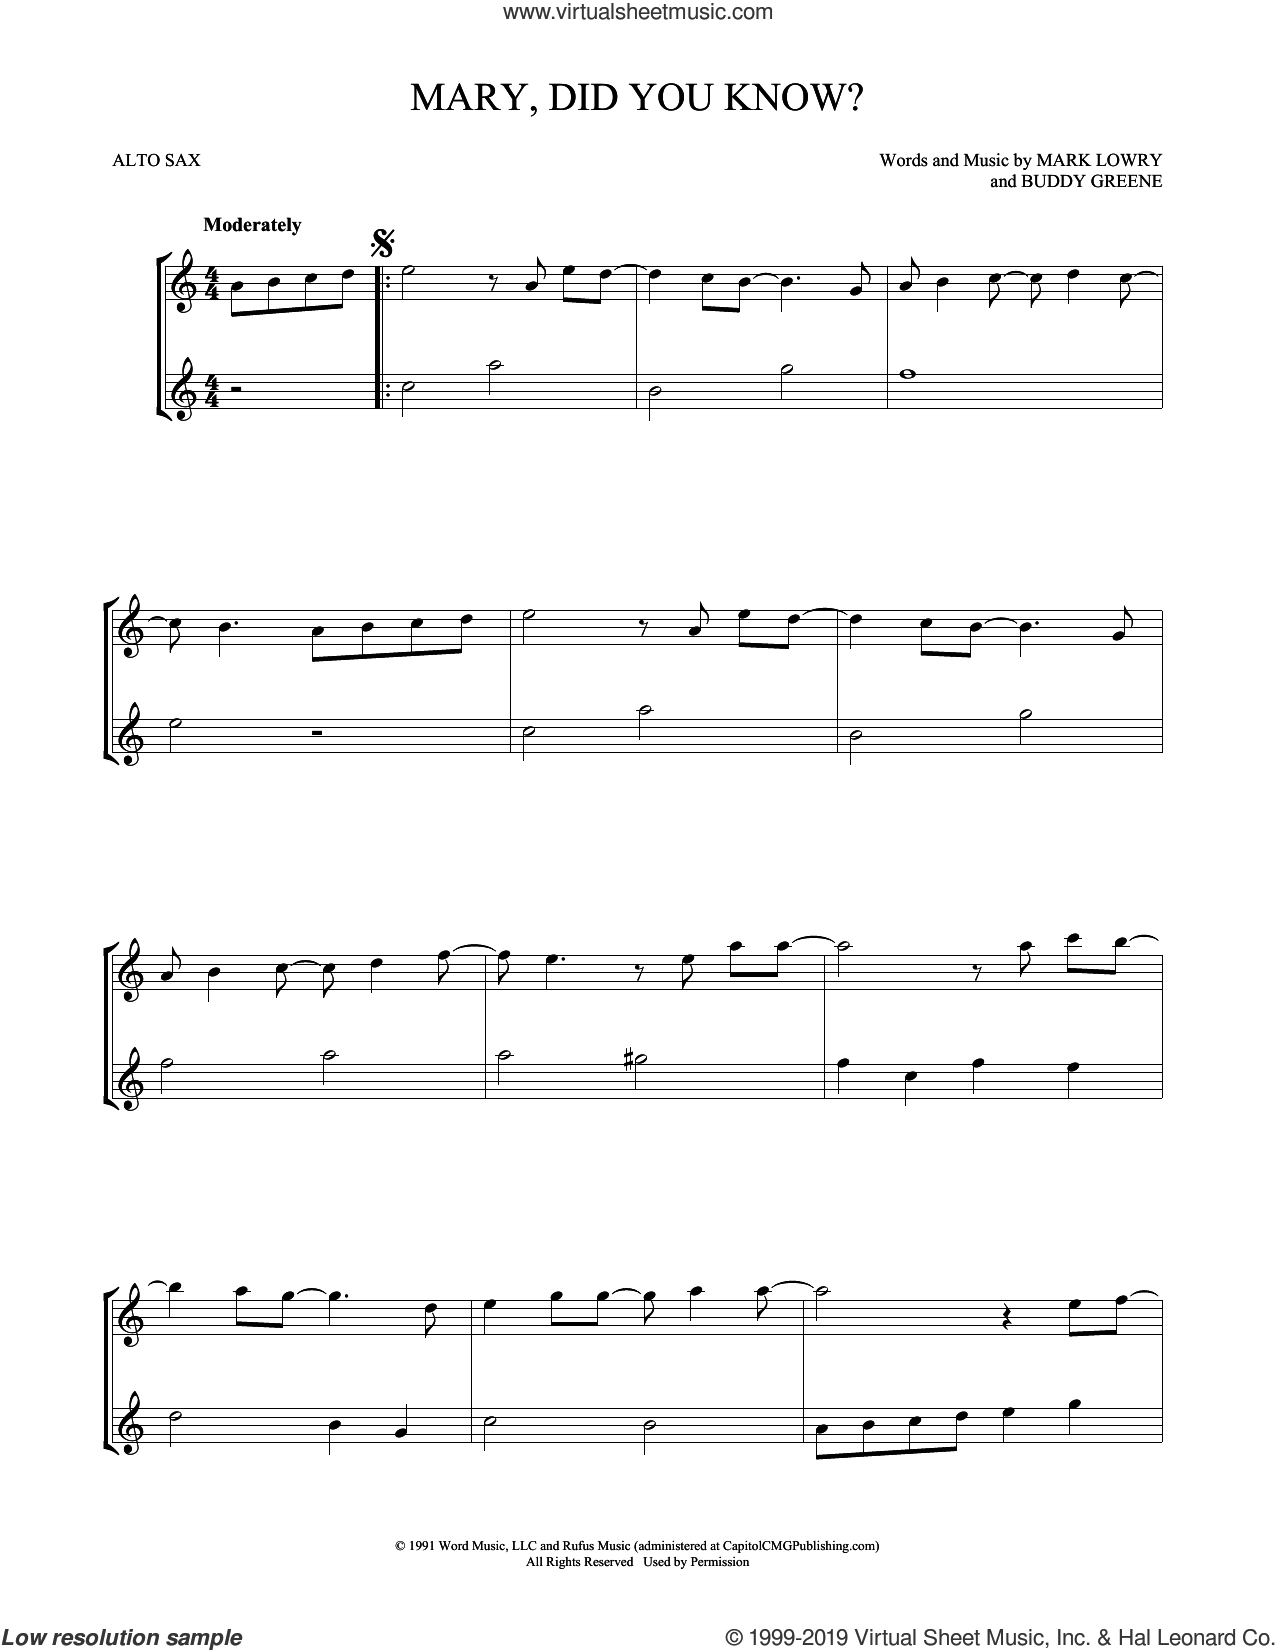 Mary, Did You Know? sheet music for two alto saxophones (duets) by Buddy Greene and Mark Lowry, intermediate skill level